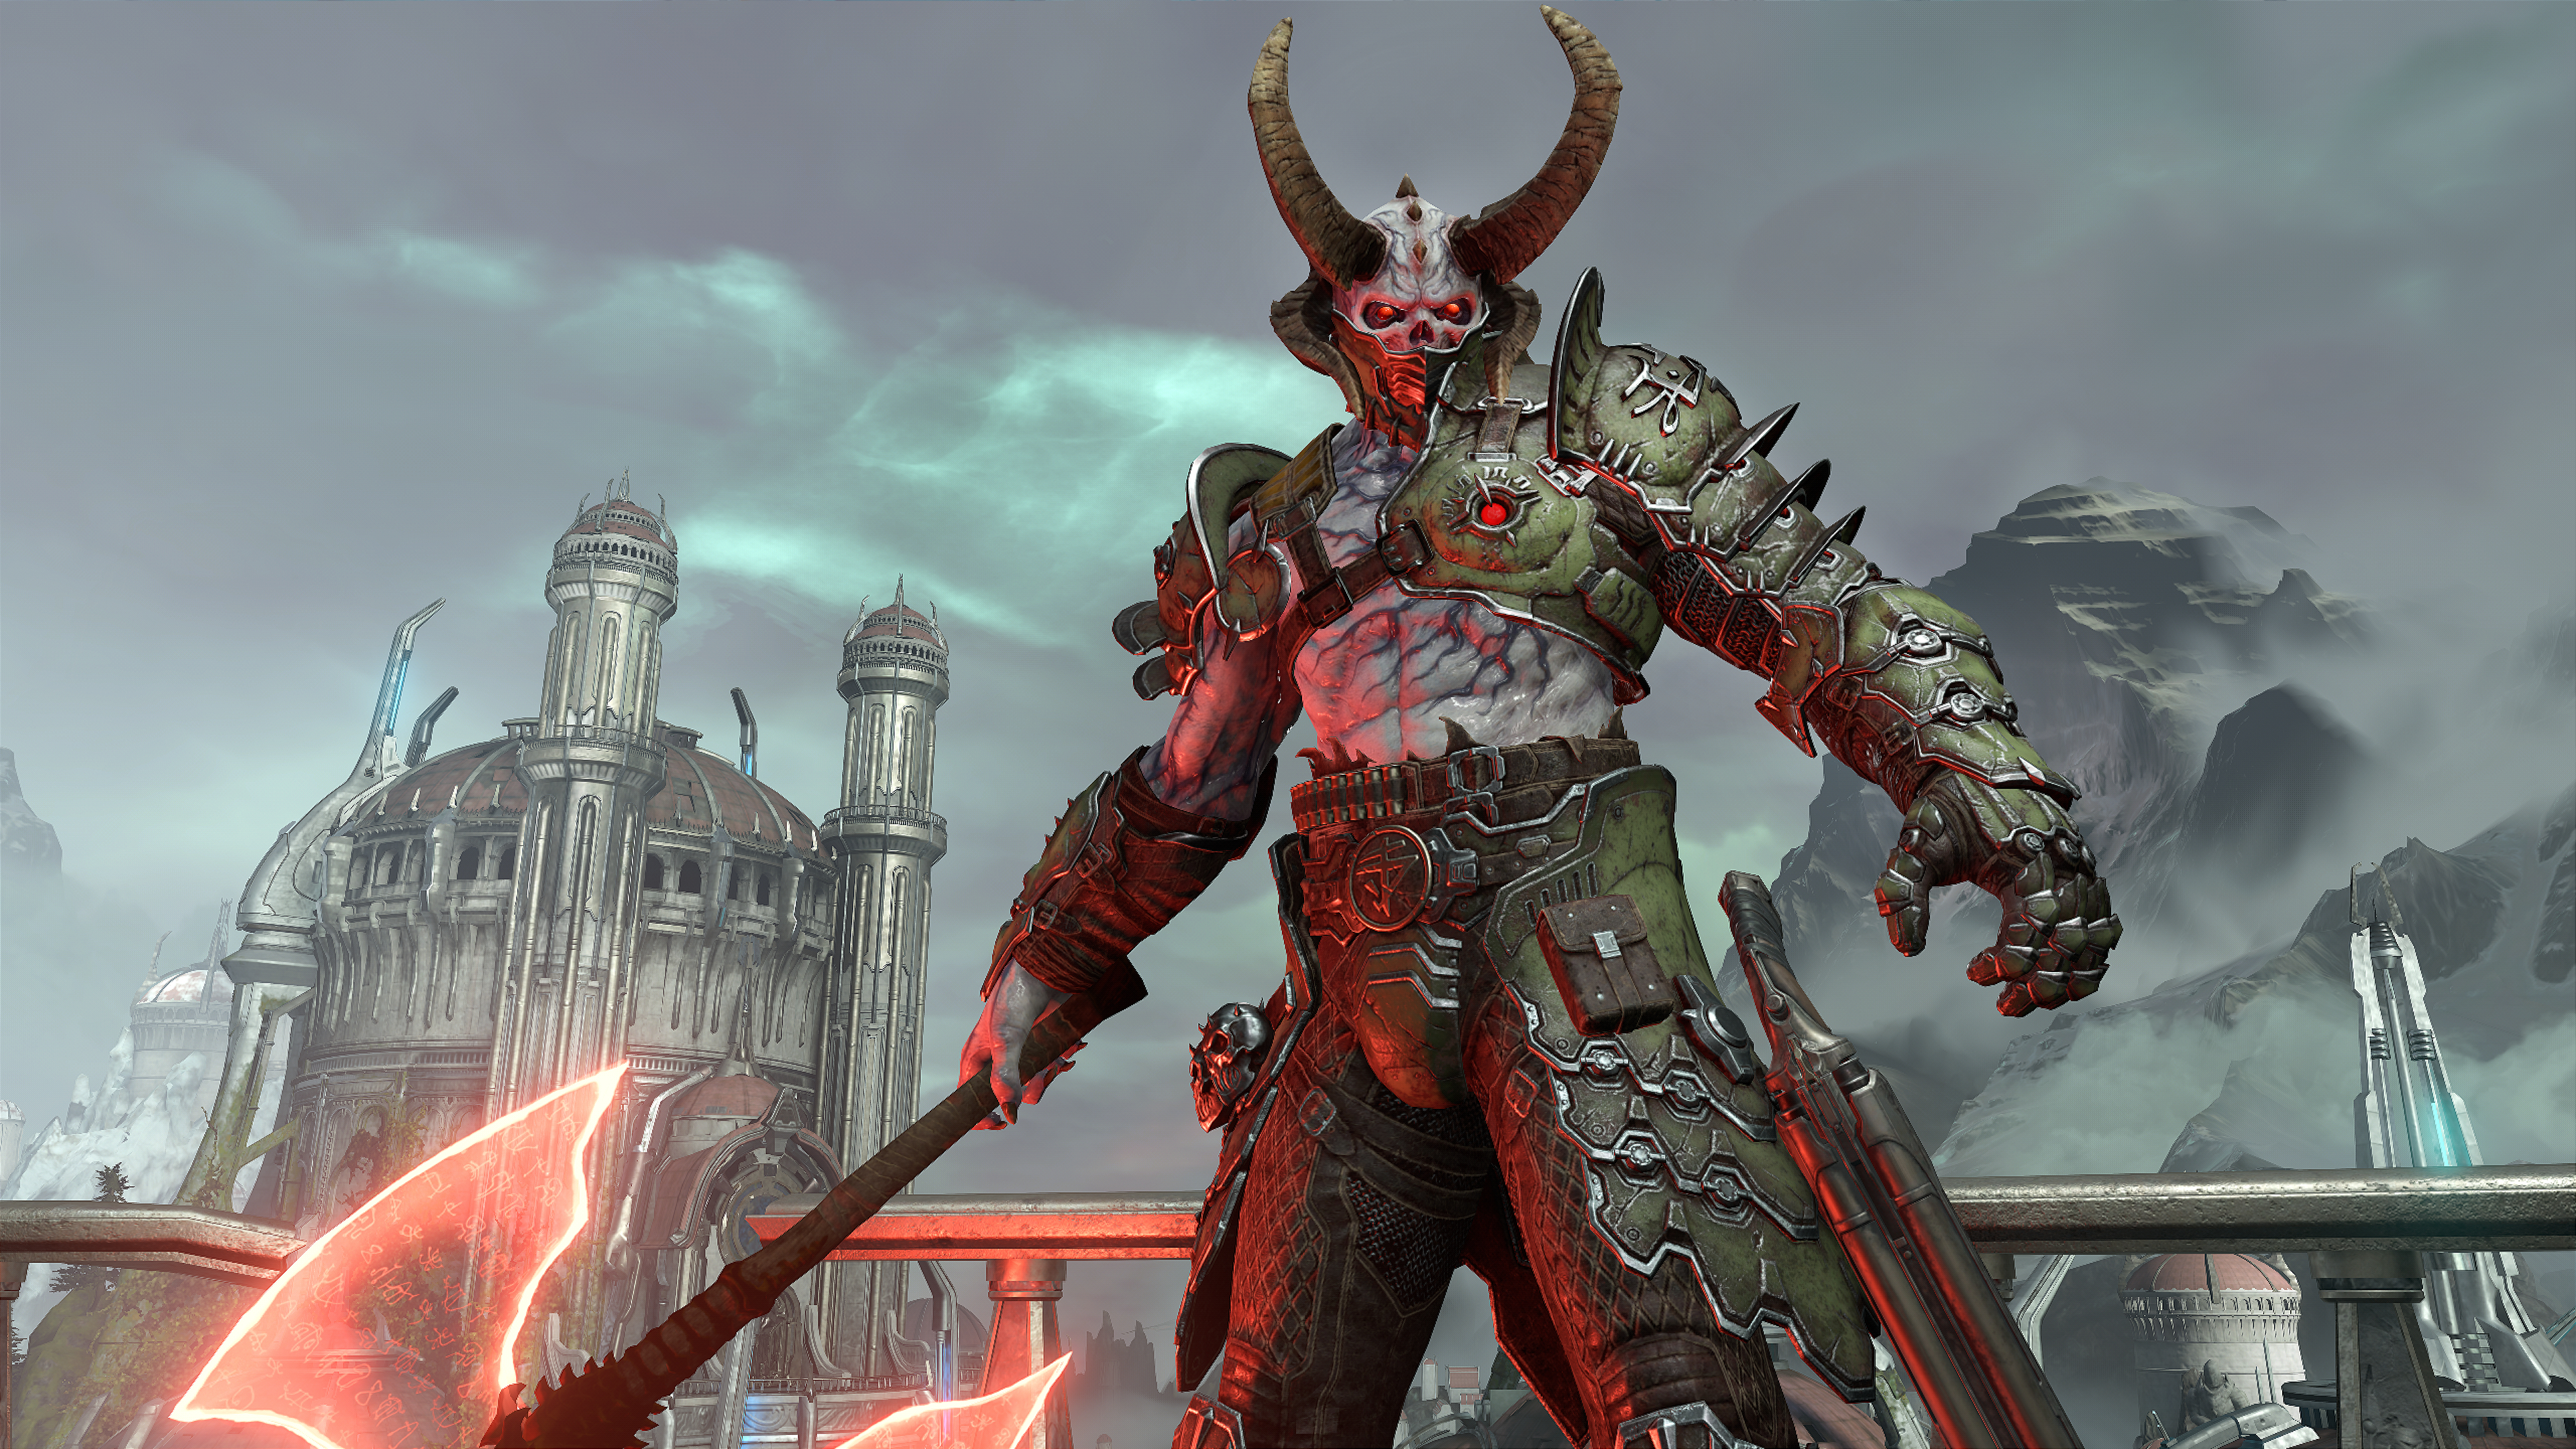 Doom Eternal release date, trailers, modes, and gameplay